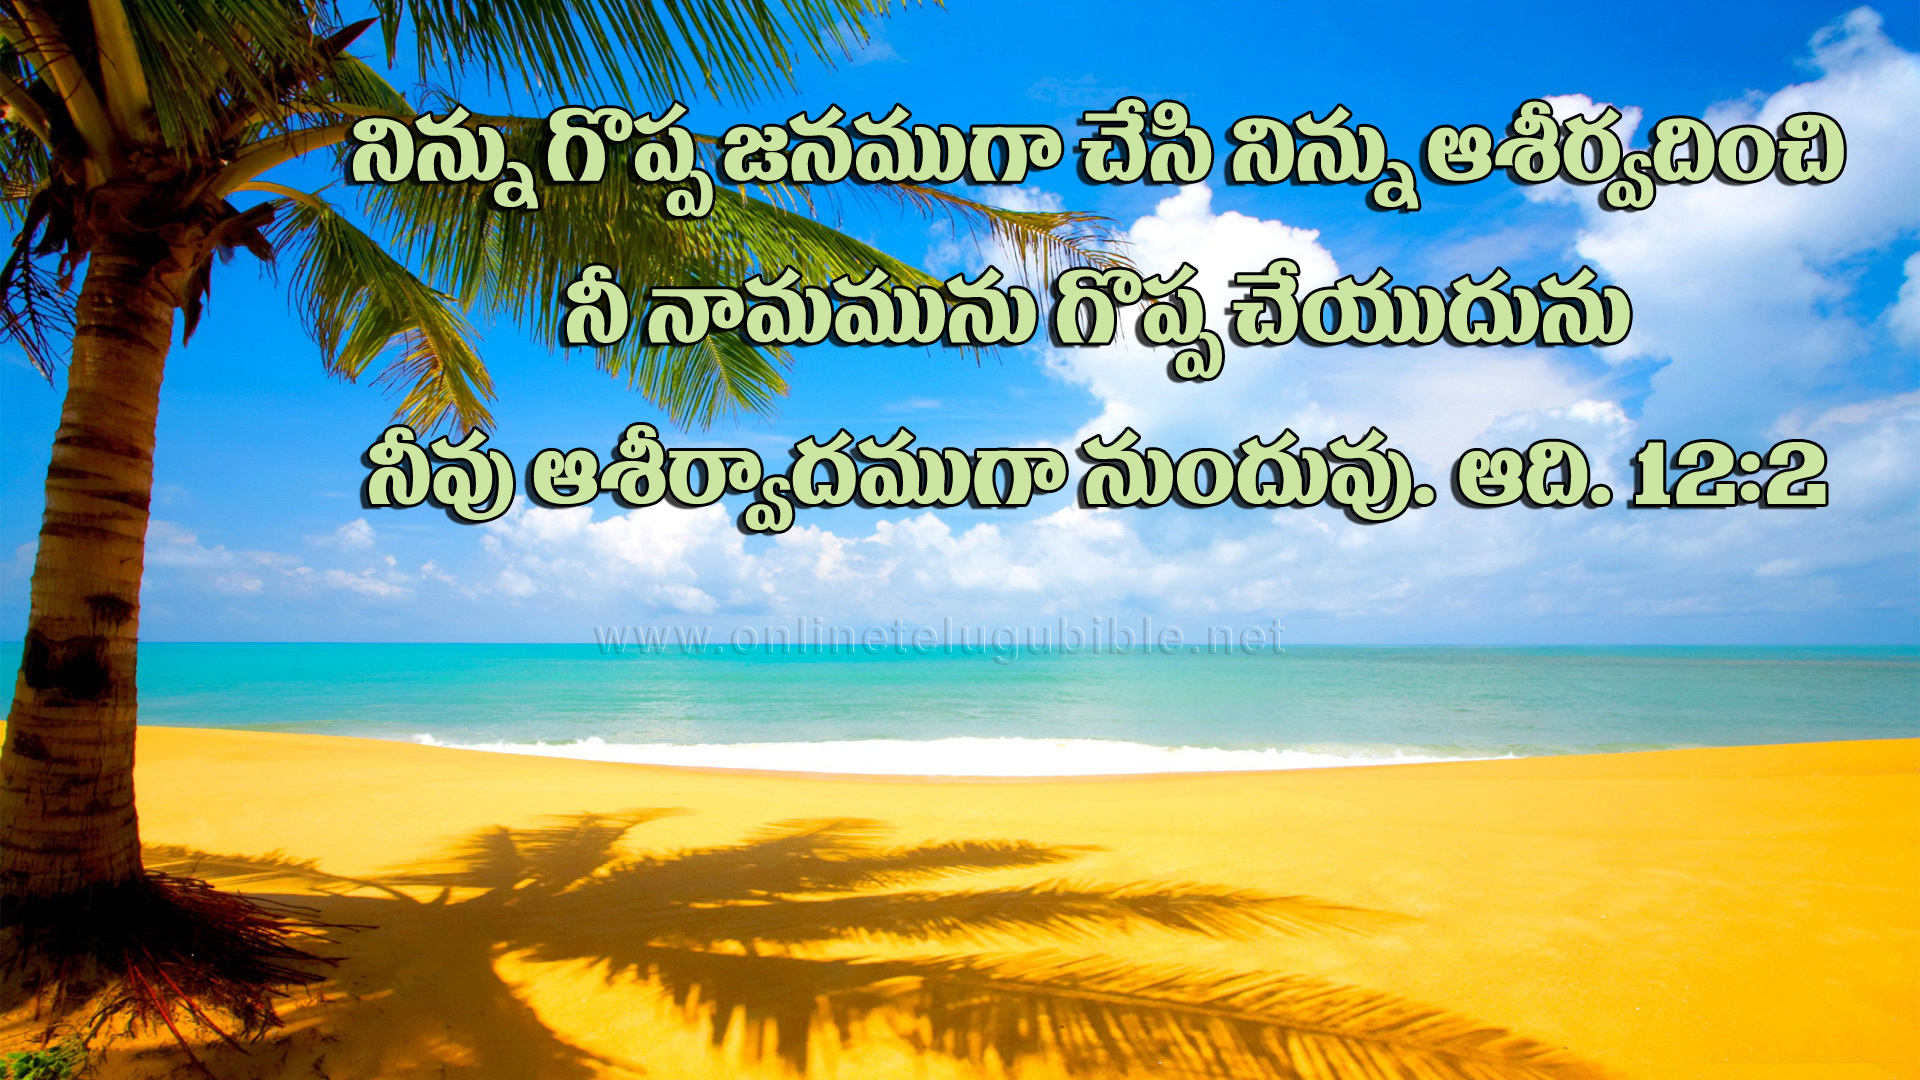 Bible Literature Ministry Bible Verses Wallpapers